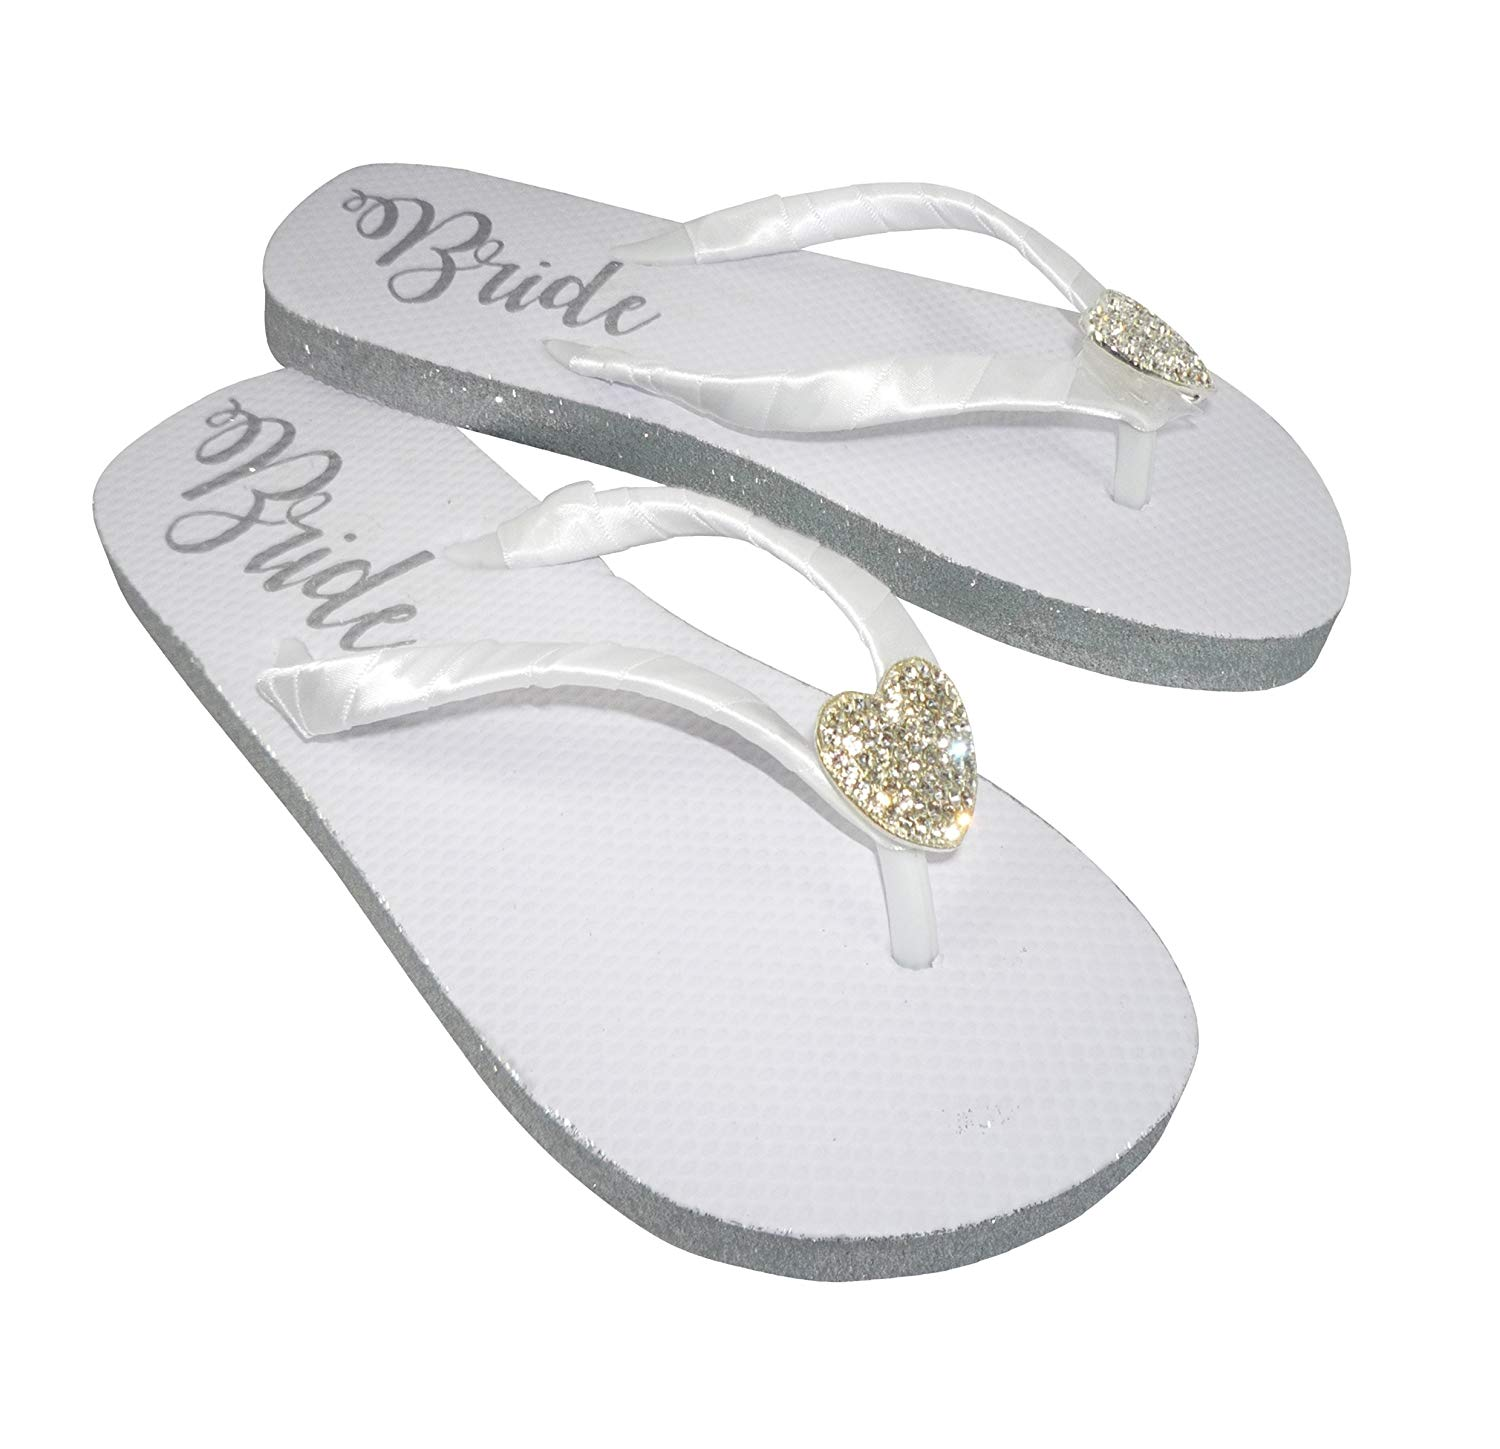 5204b4c9f Get Quotations · Silver Glitter Bride Sole Flip Flops with Rhinestone  Embellishment